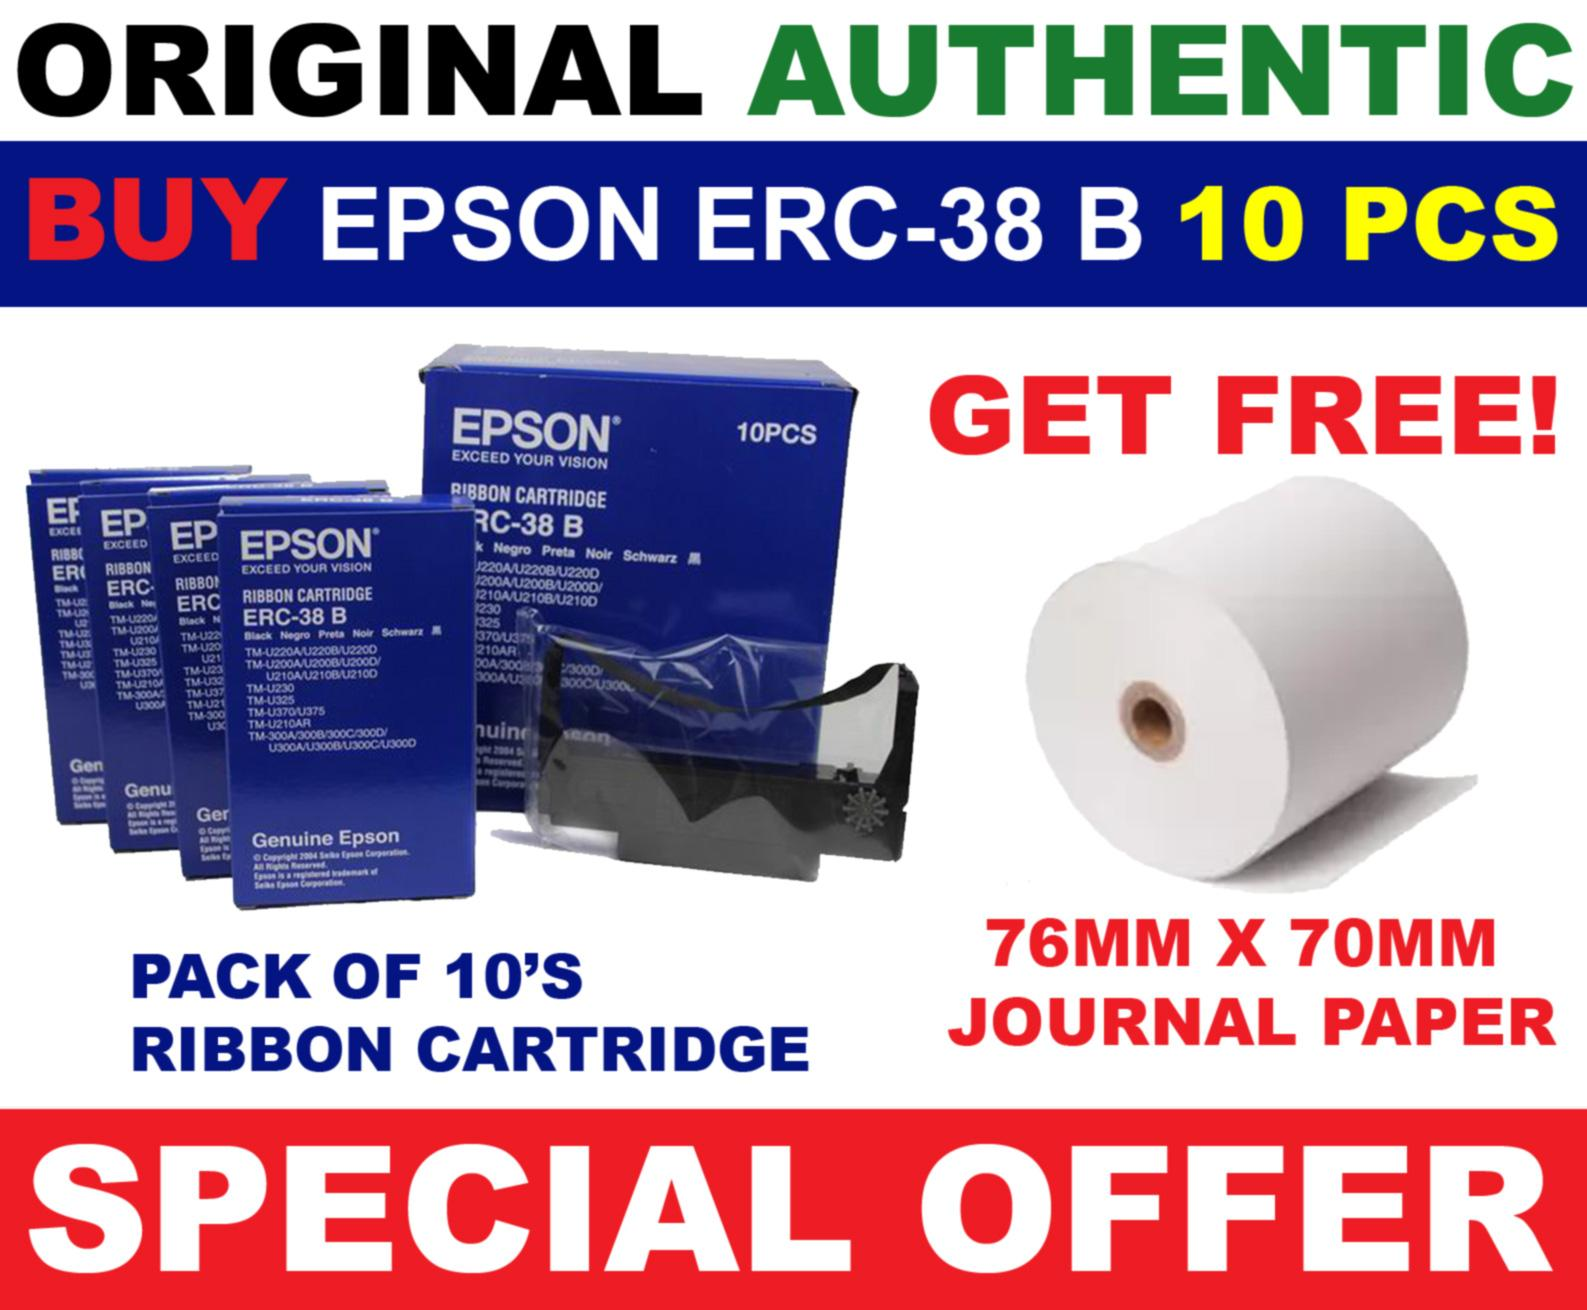 Epson Philippines Price List Printer Scanner Ink Print Head L120 L130 L220 L310 L360 L365 L380 L385 L455 L485 L565 New Original Erc 38 B Ribbon Cartridge 10 Pcs Authentic